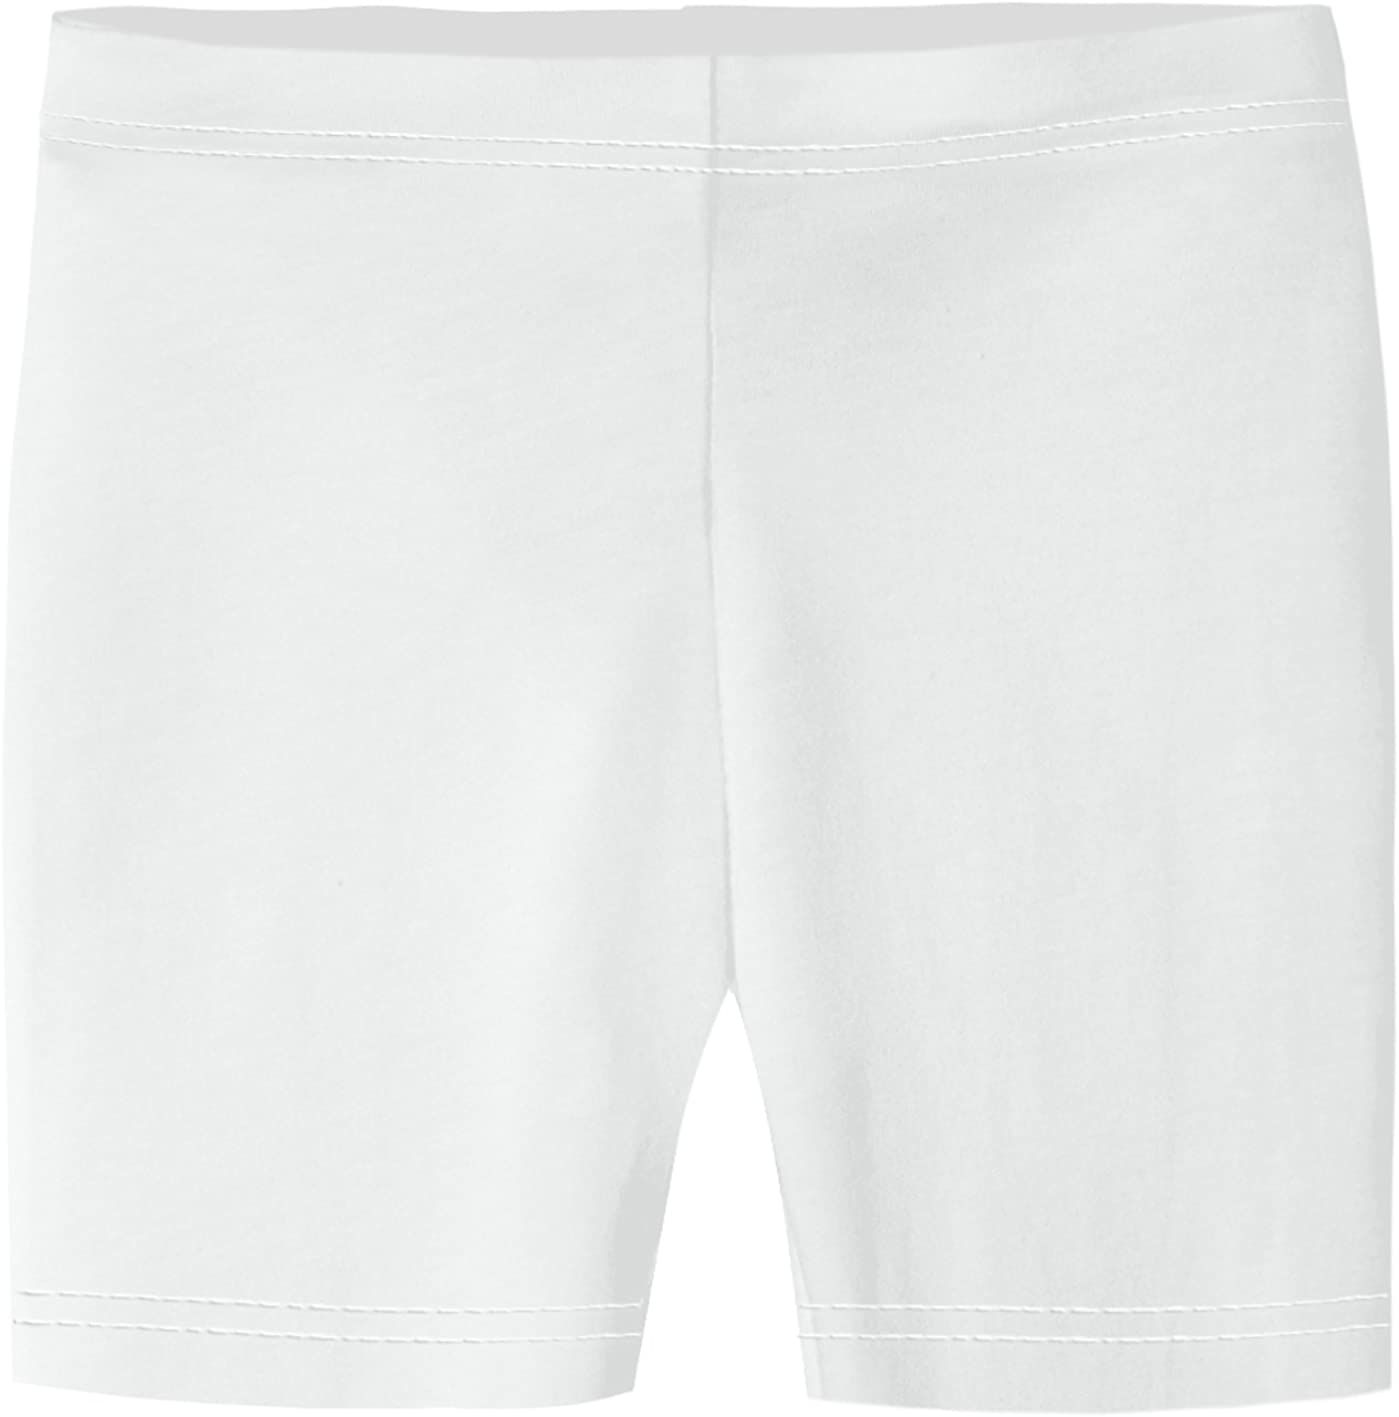 City Threads Girls' 100% Cotton Bike Shorts for Sports, School Uniform, or Under Skirts Made in USA: Clothing